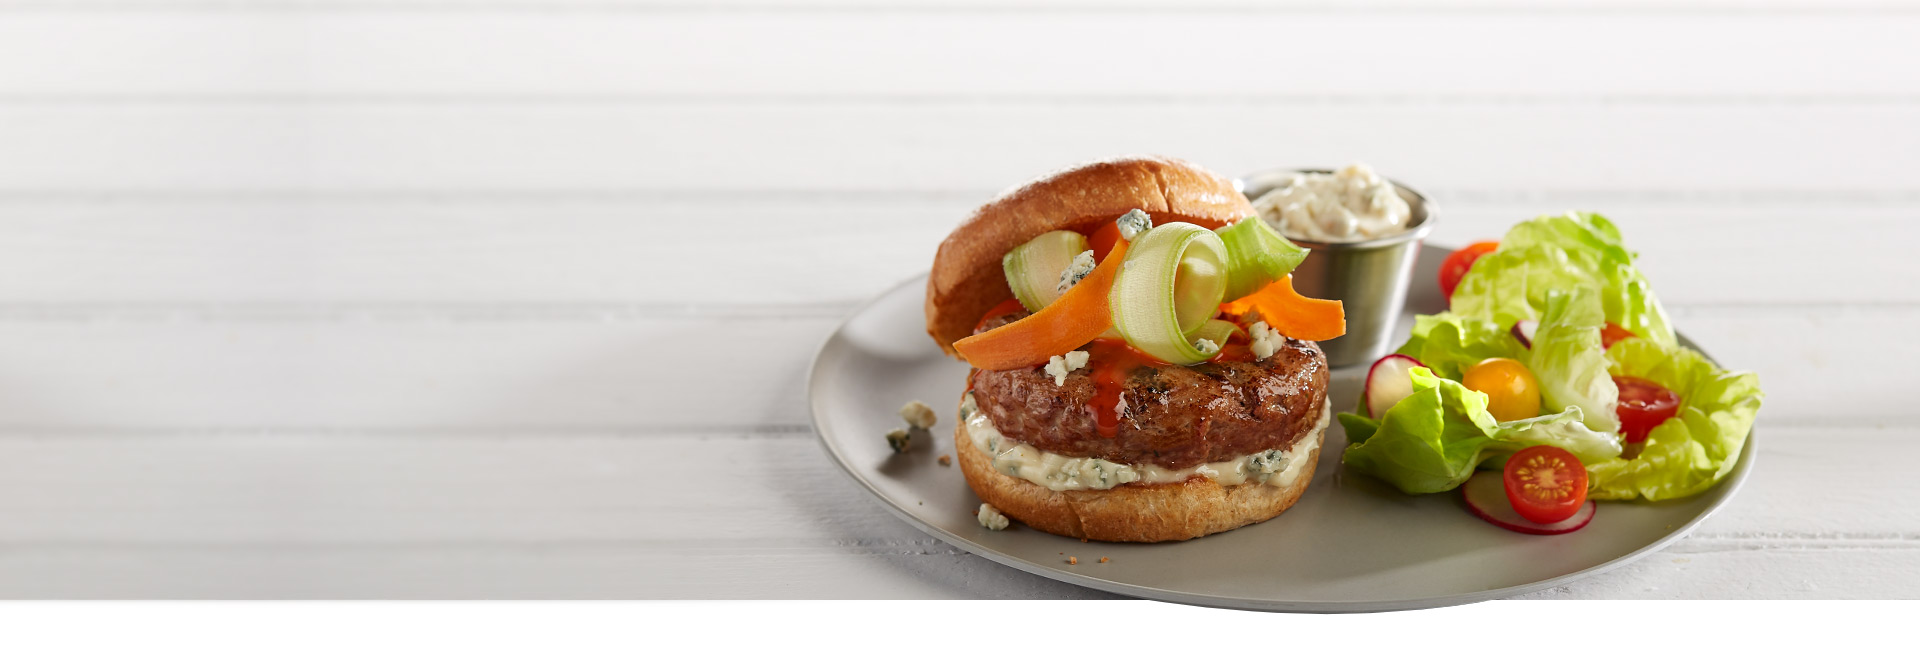 Homestyle turkey burgers have arrived.